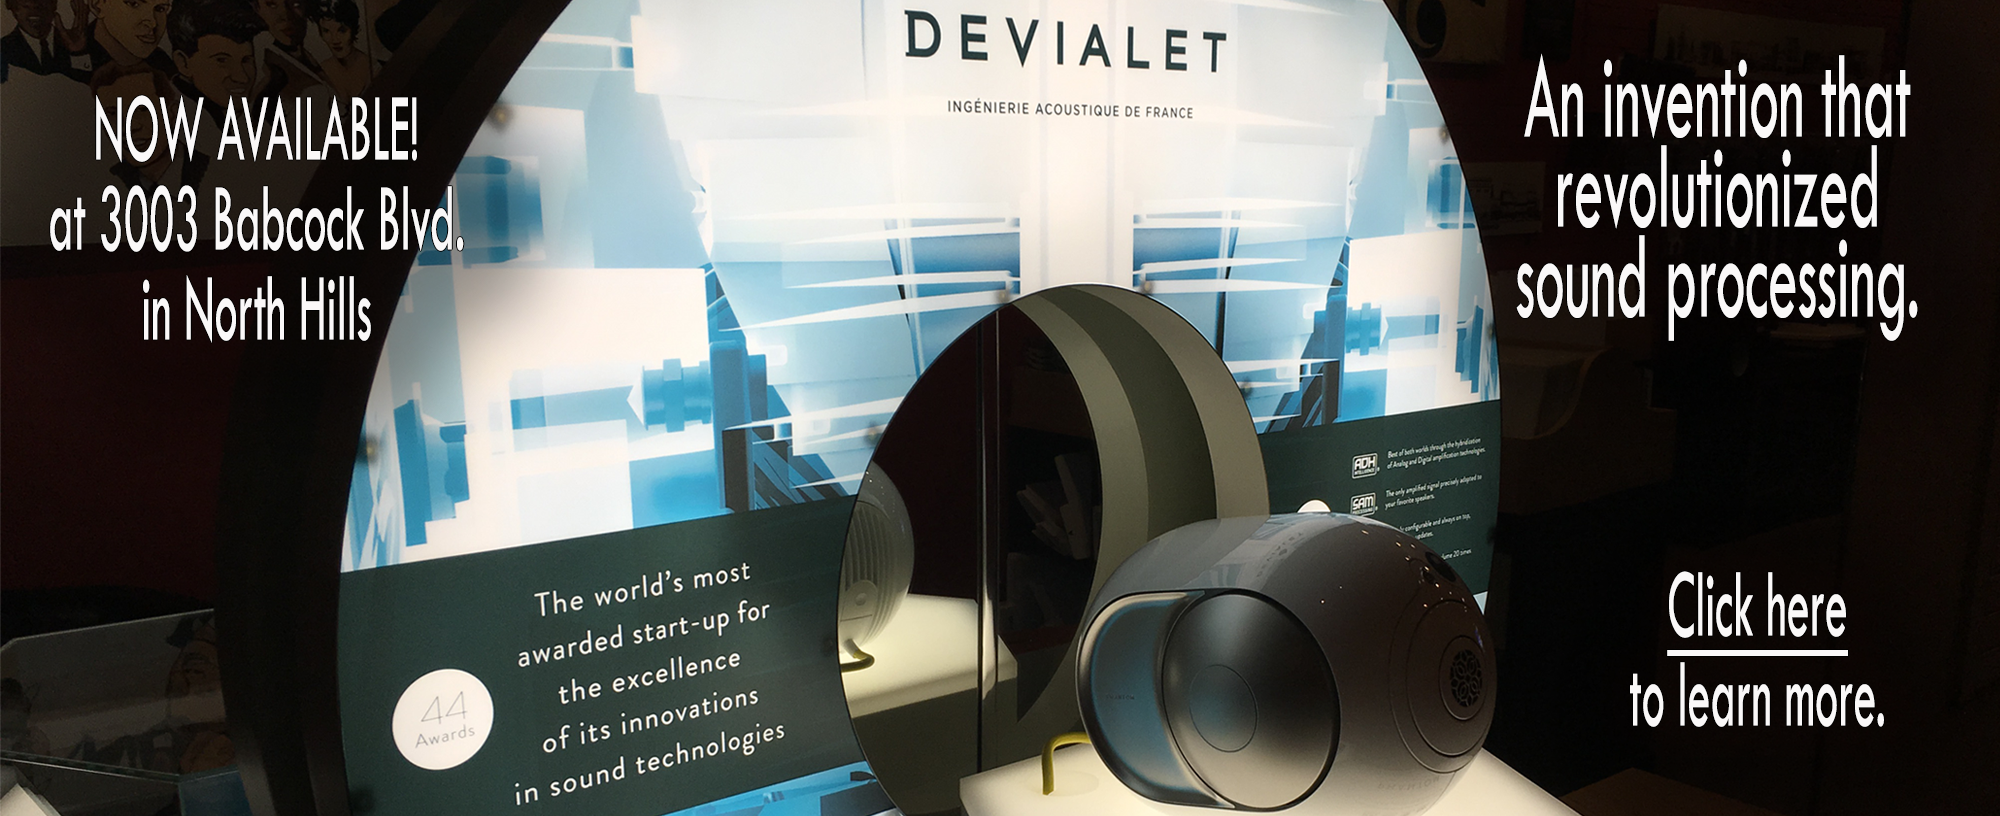 Now in Pittsburgh-Devialet